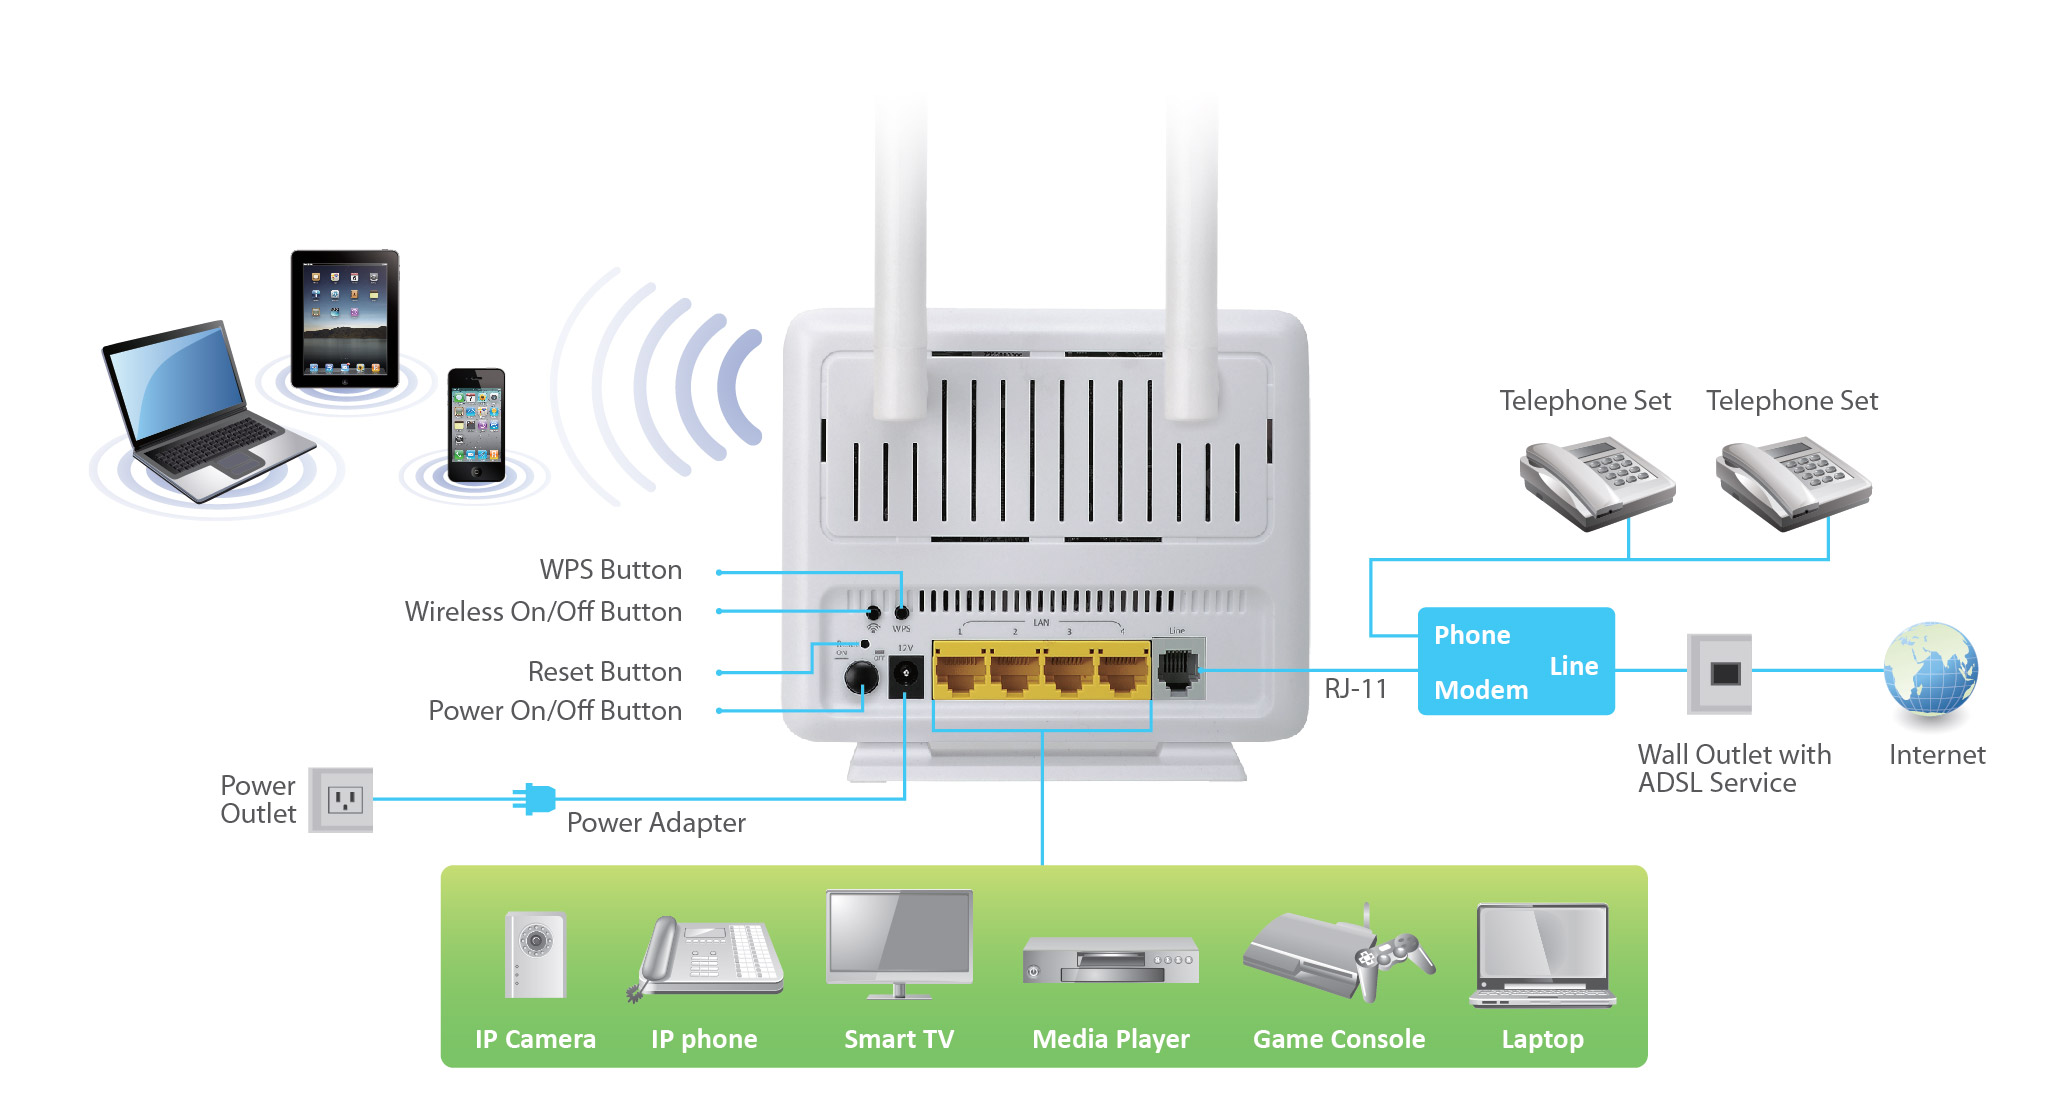 Home Wiring Ethernet Diagram Simple Guide About Edimax Adsl Modem Routers N300 Wi Fi Wireless